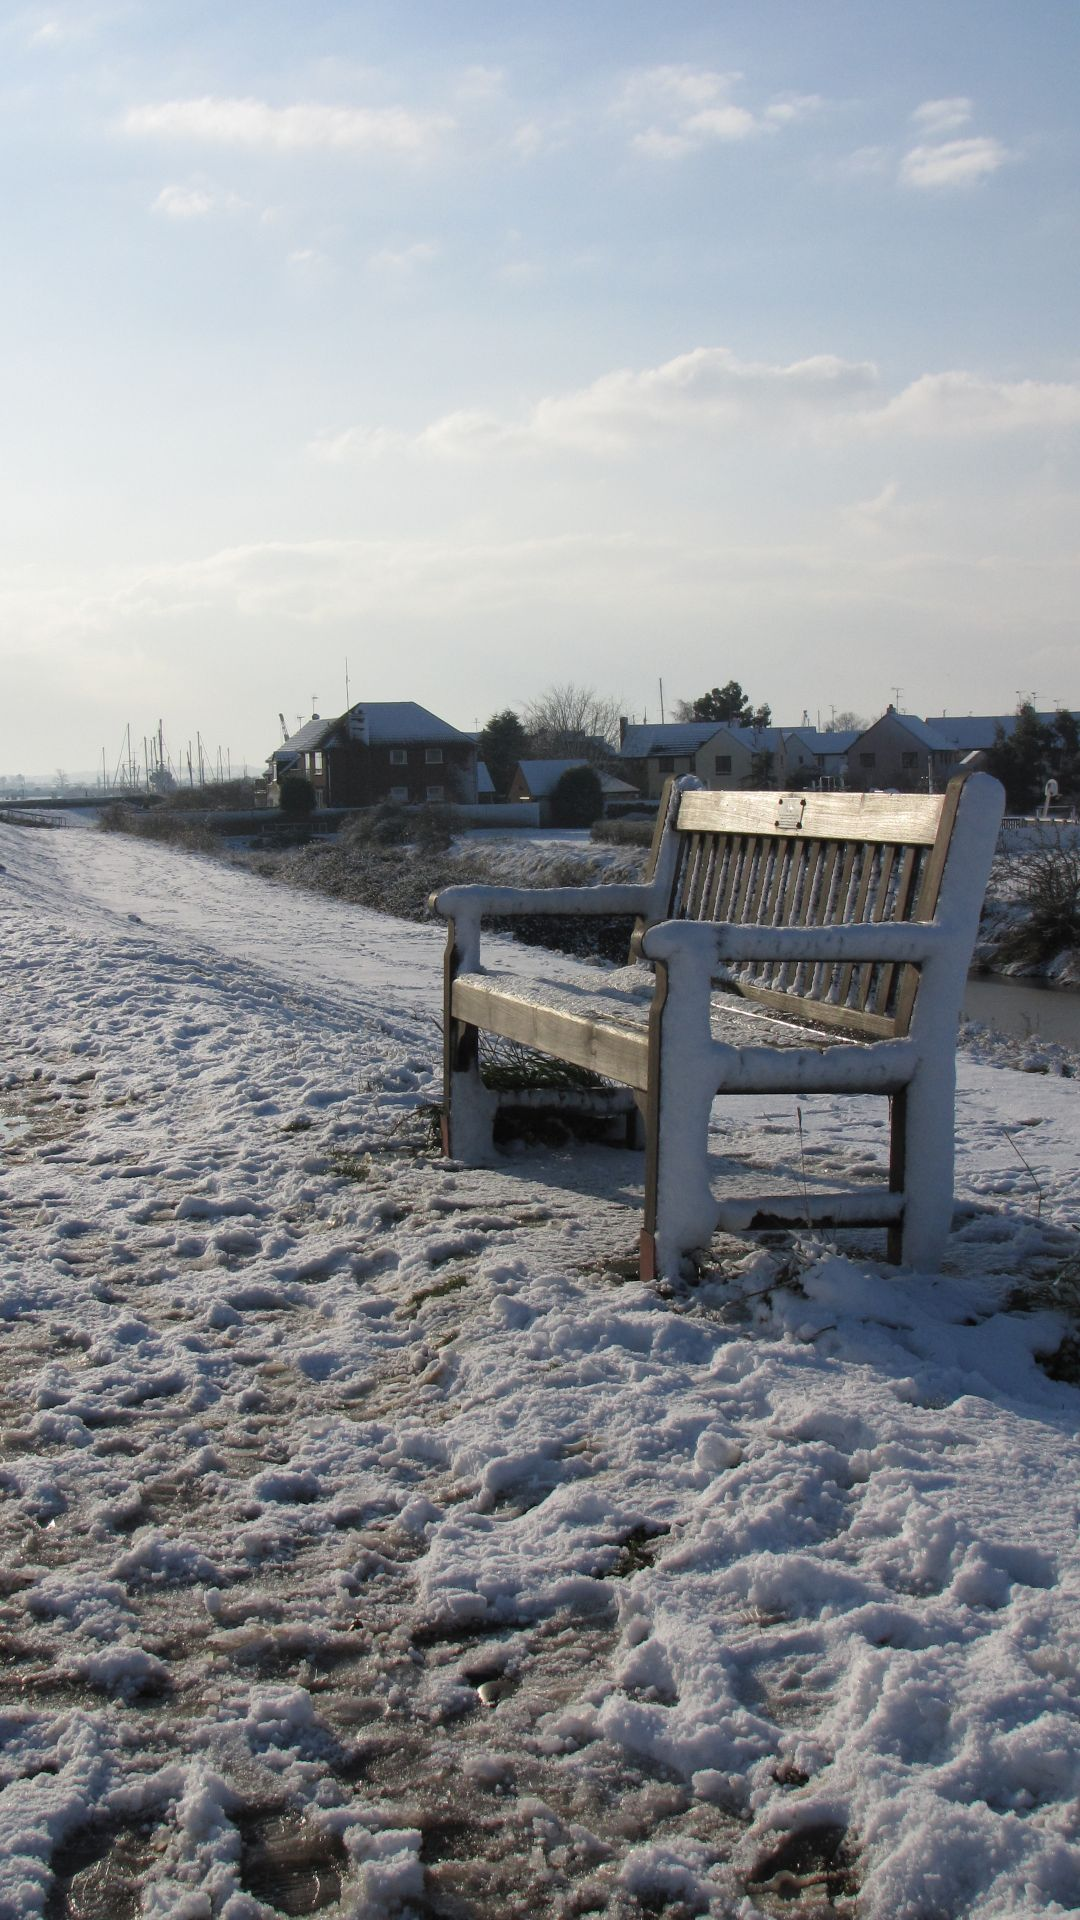 Heybridge Basin, Essex, UK - by the edge of the Blackater estuary during a 'cold snap'